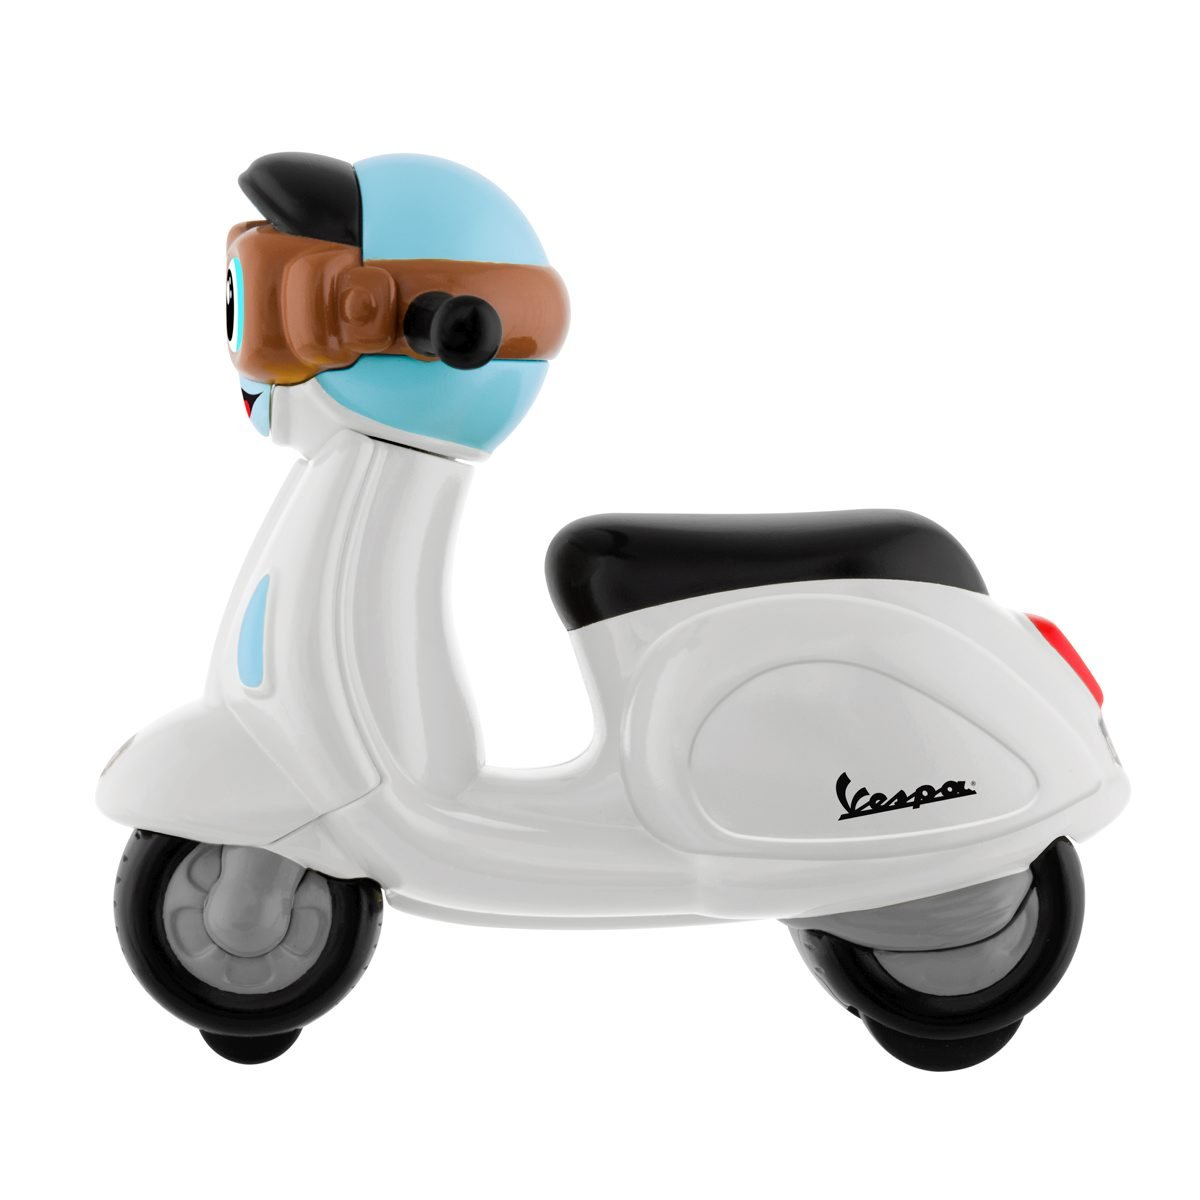 Chicco - Mini moto Vespa Turbo Touch, con carga por retroceso, color blanco: Amazon.es: Bebé